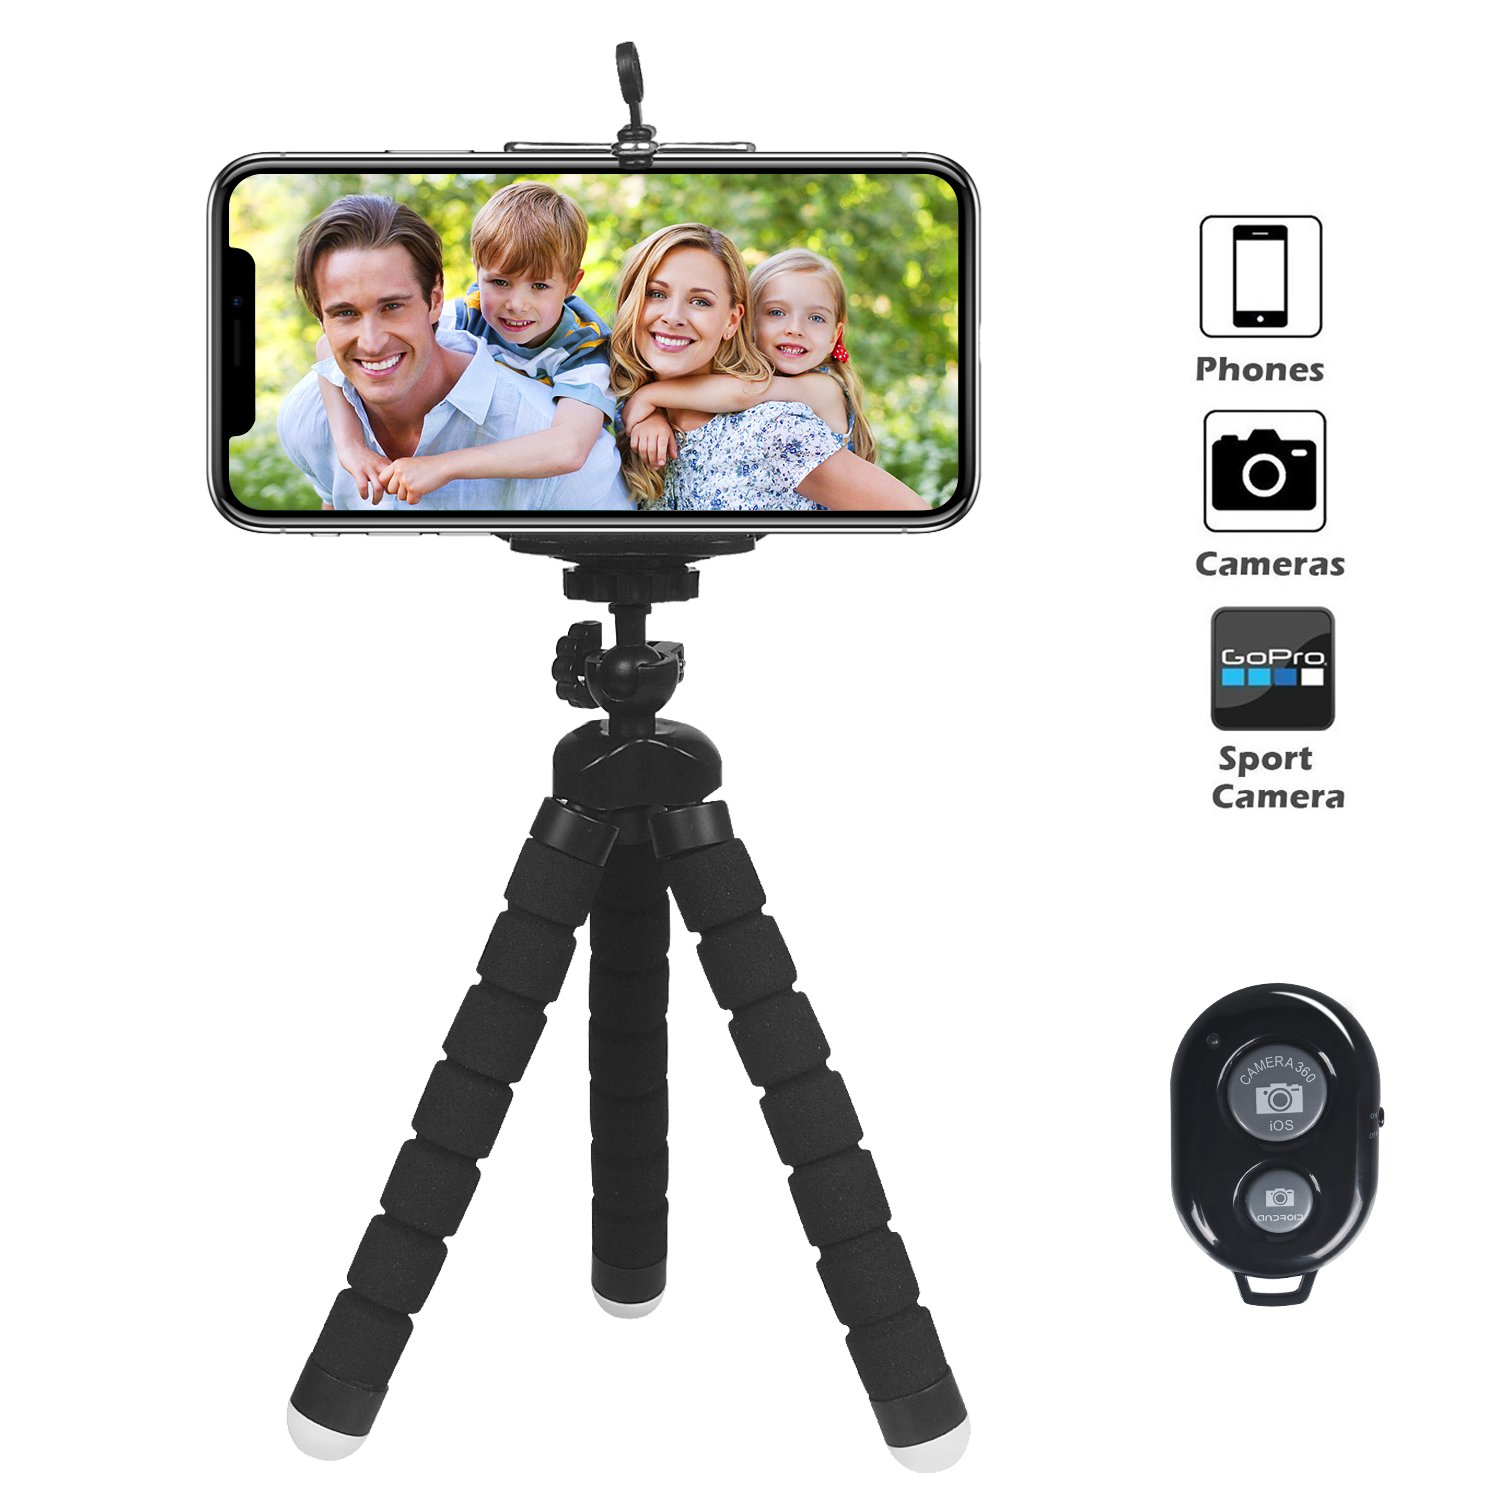 Tripod For iPhone, ARNIL iPhone Tripod Universal Smartphone Phone Tripod with Remote Shutter for iPhone, Samsung and Gopro Action Camera